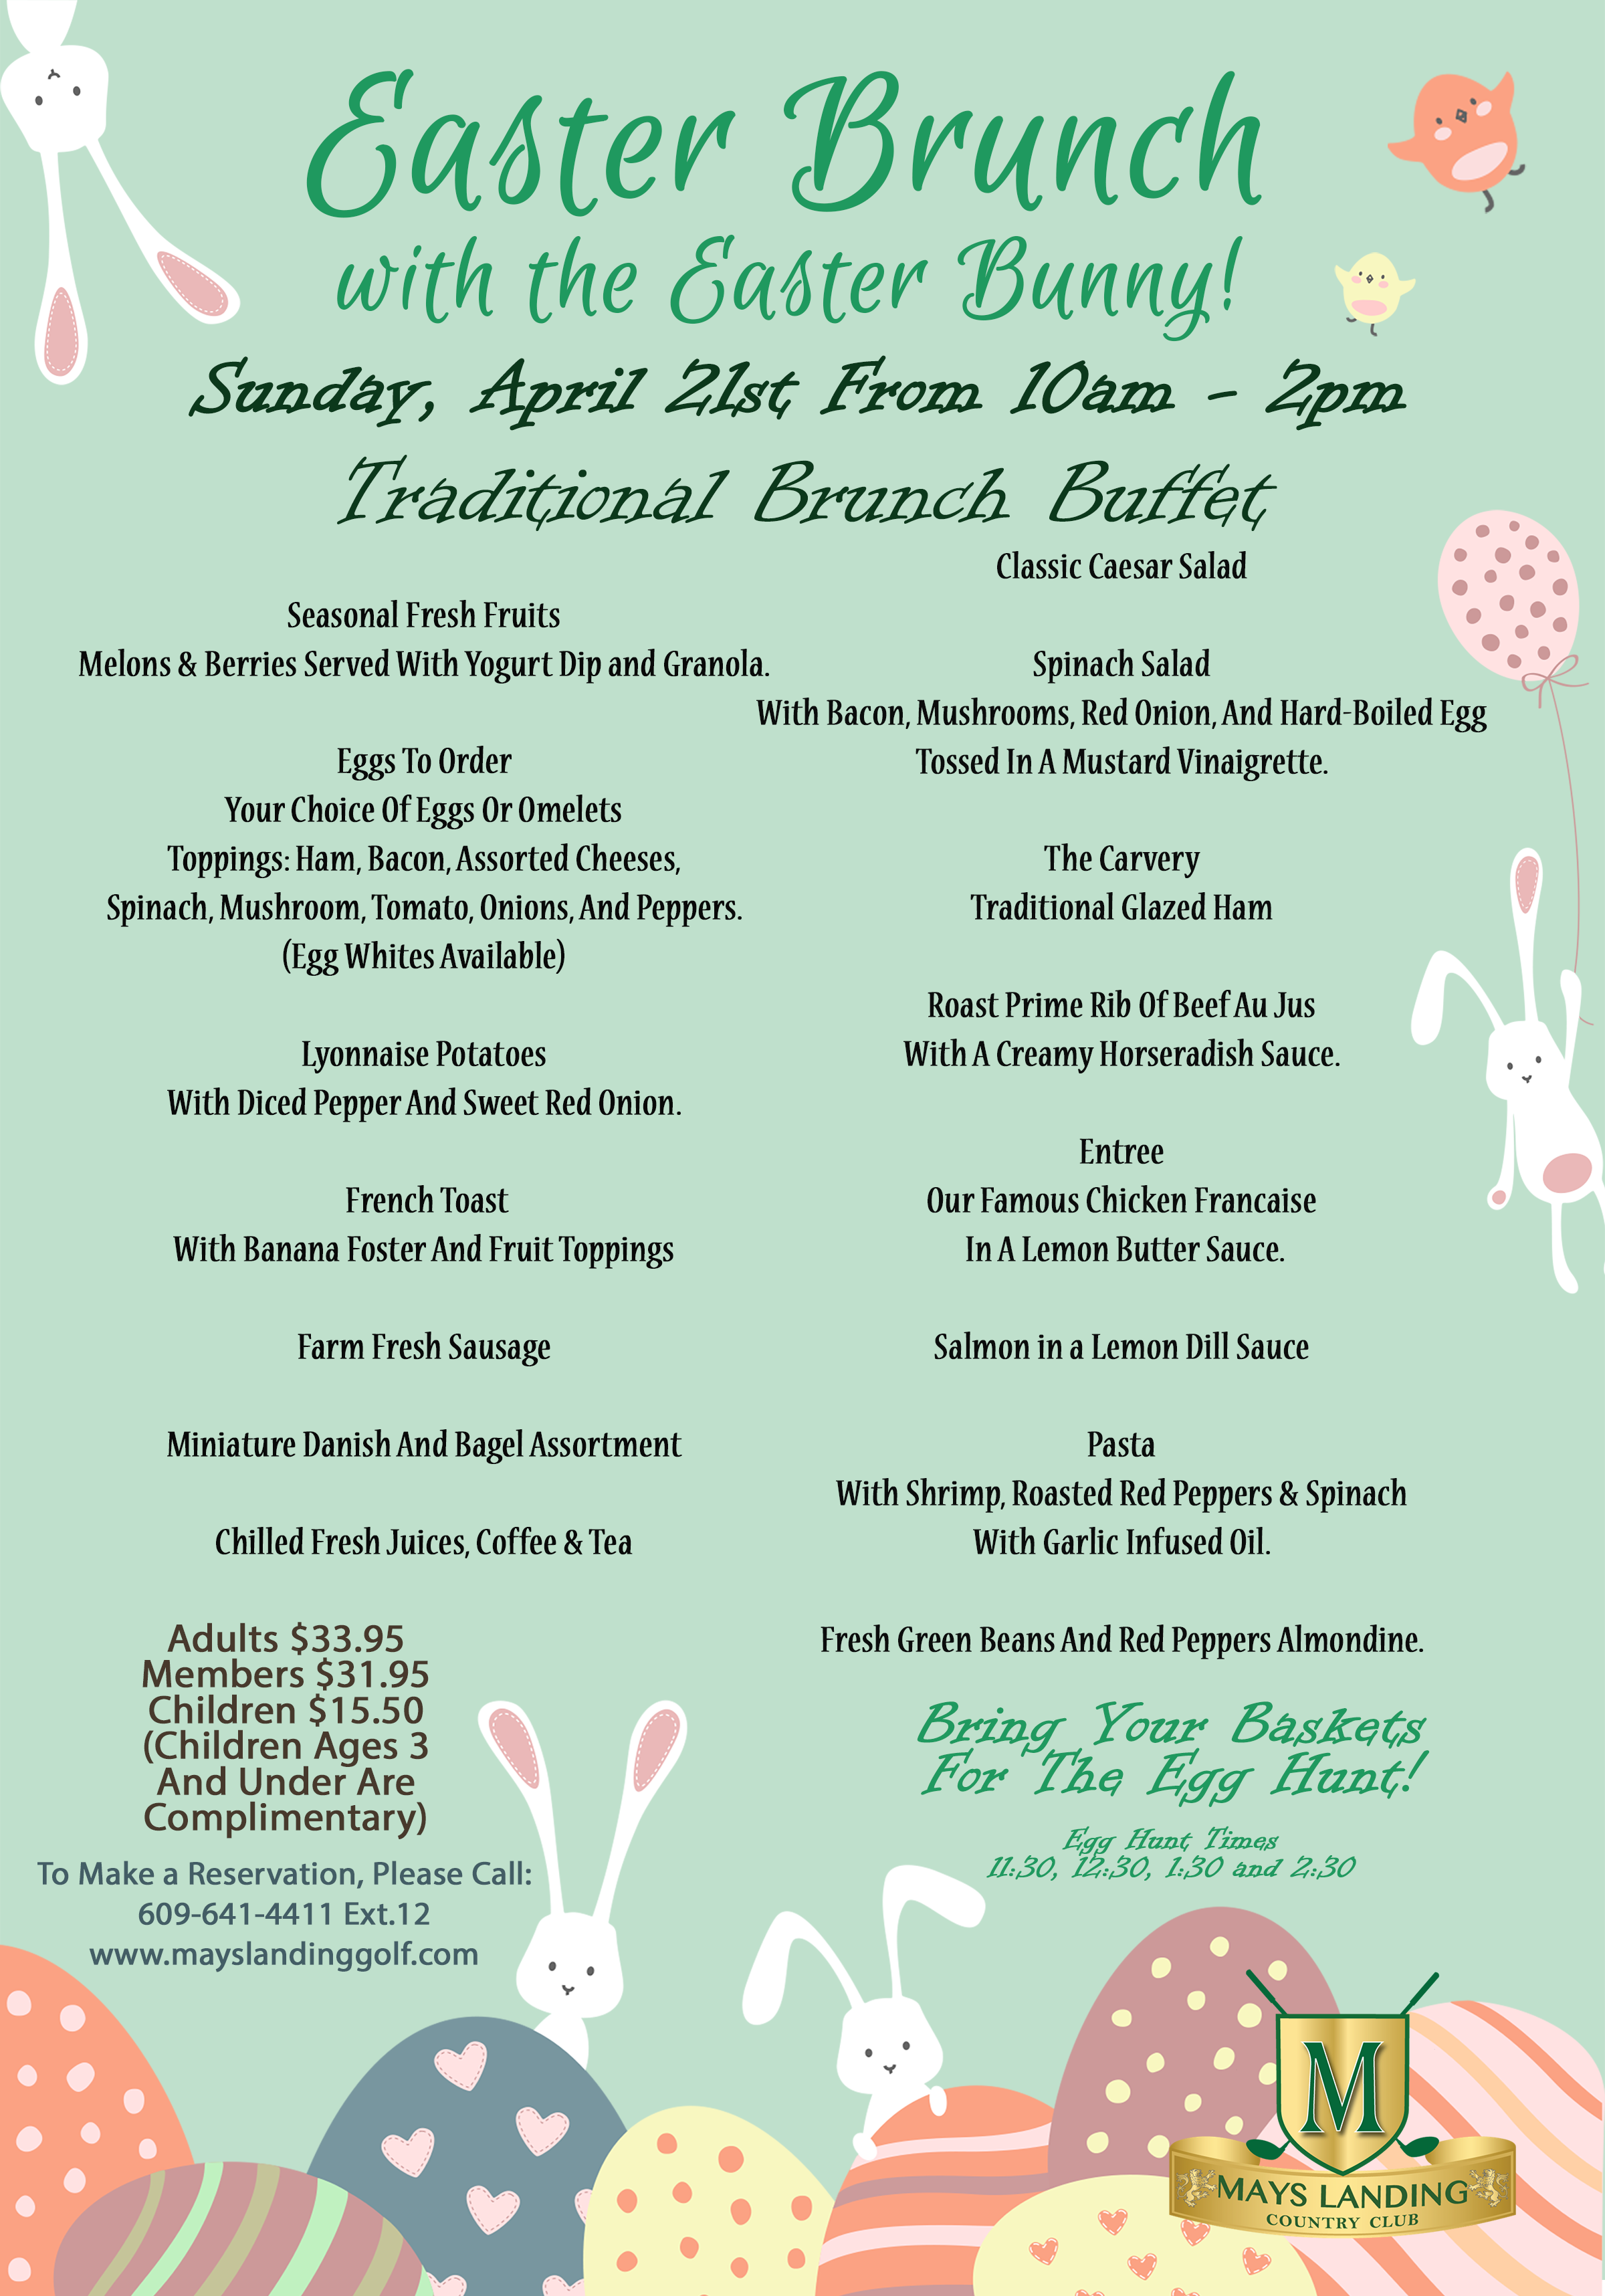 East Brunch with the Easter bunny. Spril 21 from 10 am - 2 pm/ For more info and reservations call 609-641-4411 ext 12